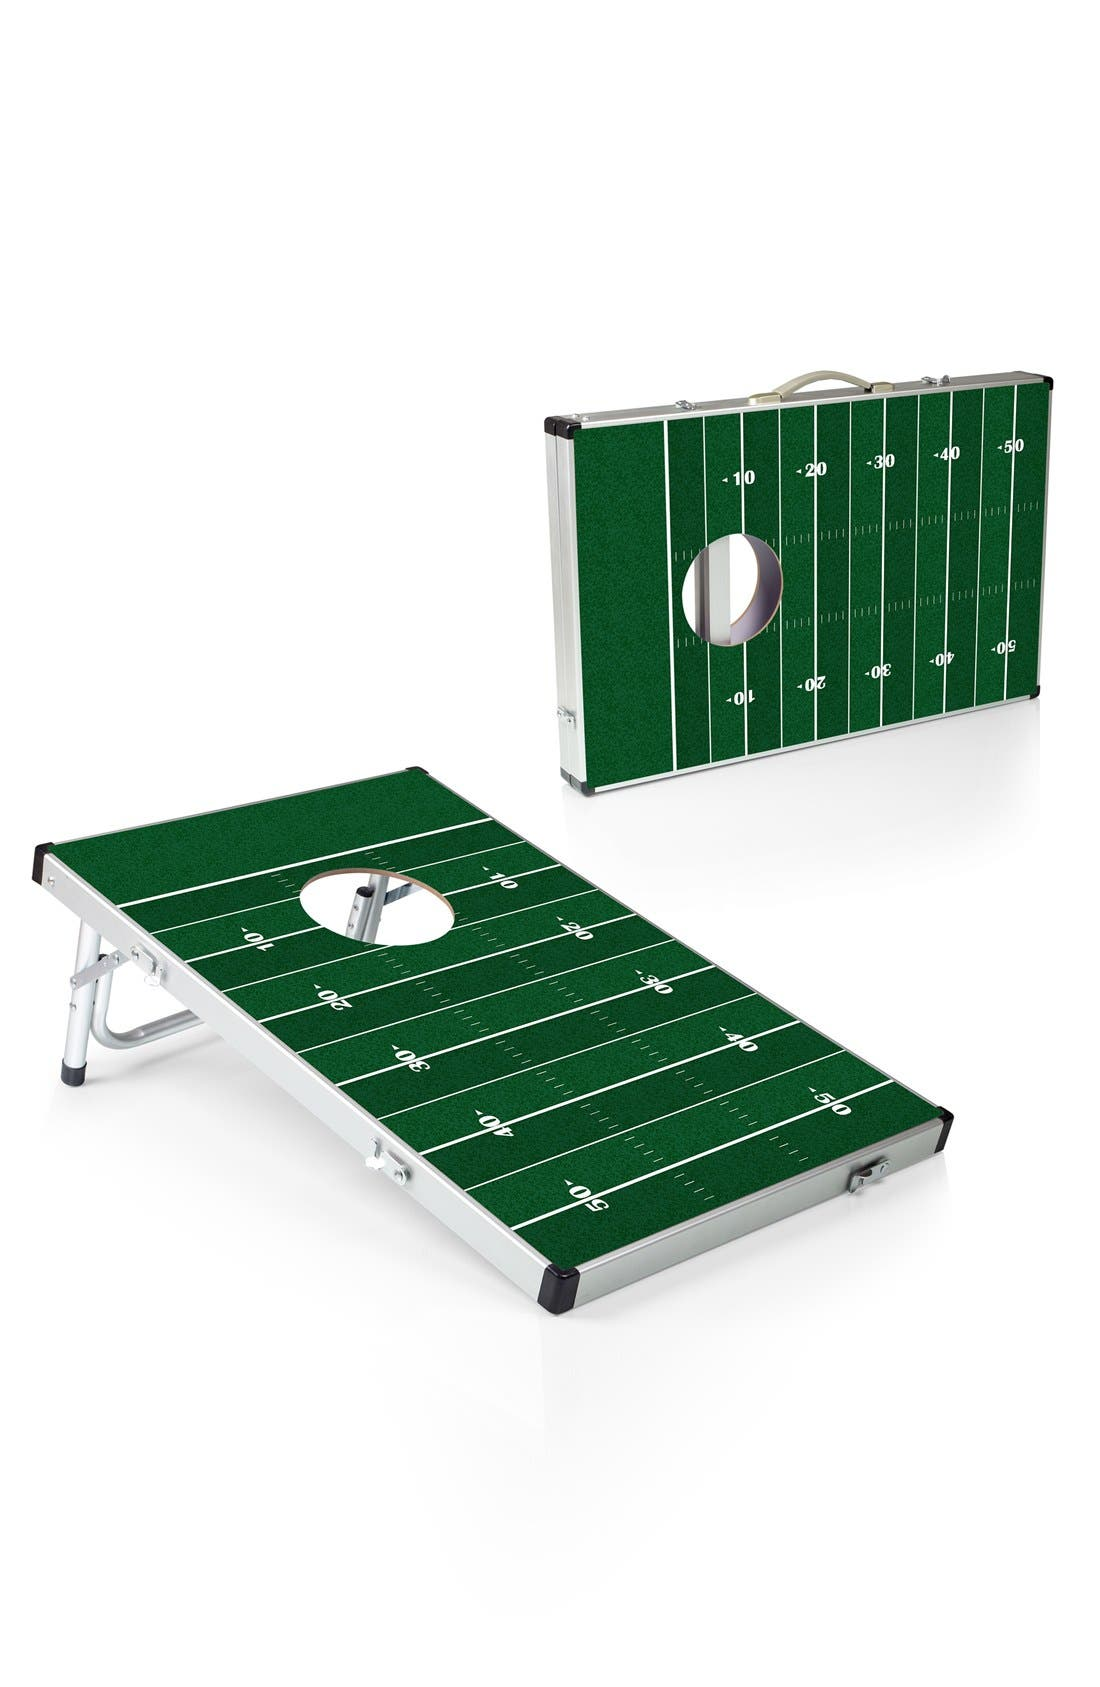 Alternate Image 3  - Picnic Time 'Football' Bean Bag Toss Game